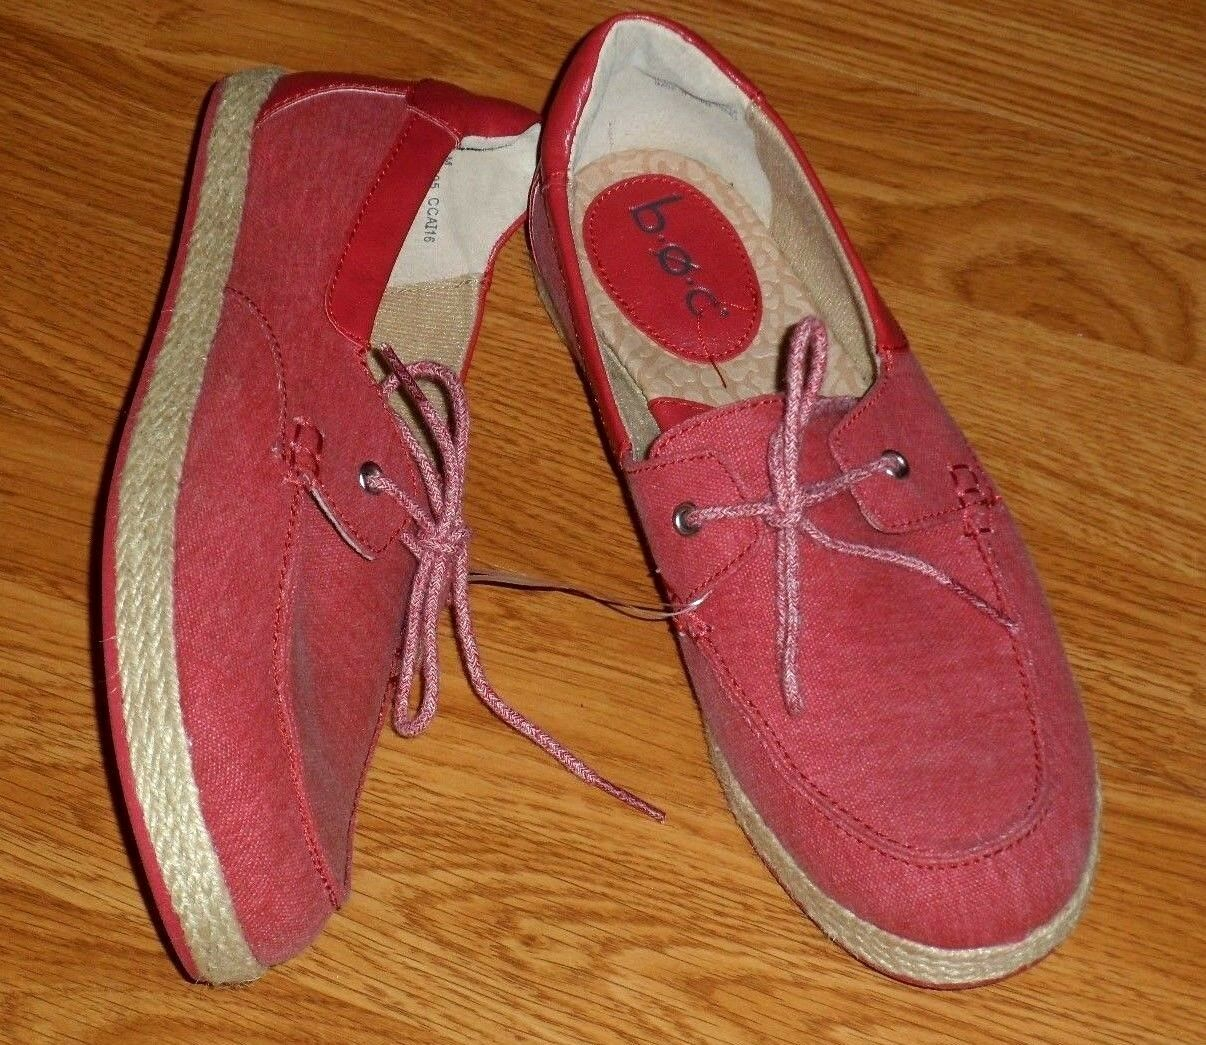 B.O.C. WOMEN'S SHOES CANVAS LOAFERS SIZE 7 - 9  RED GRAY SLIP ON NWT